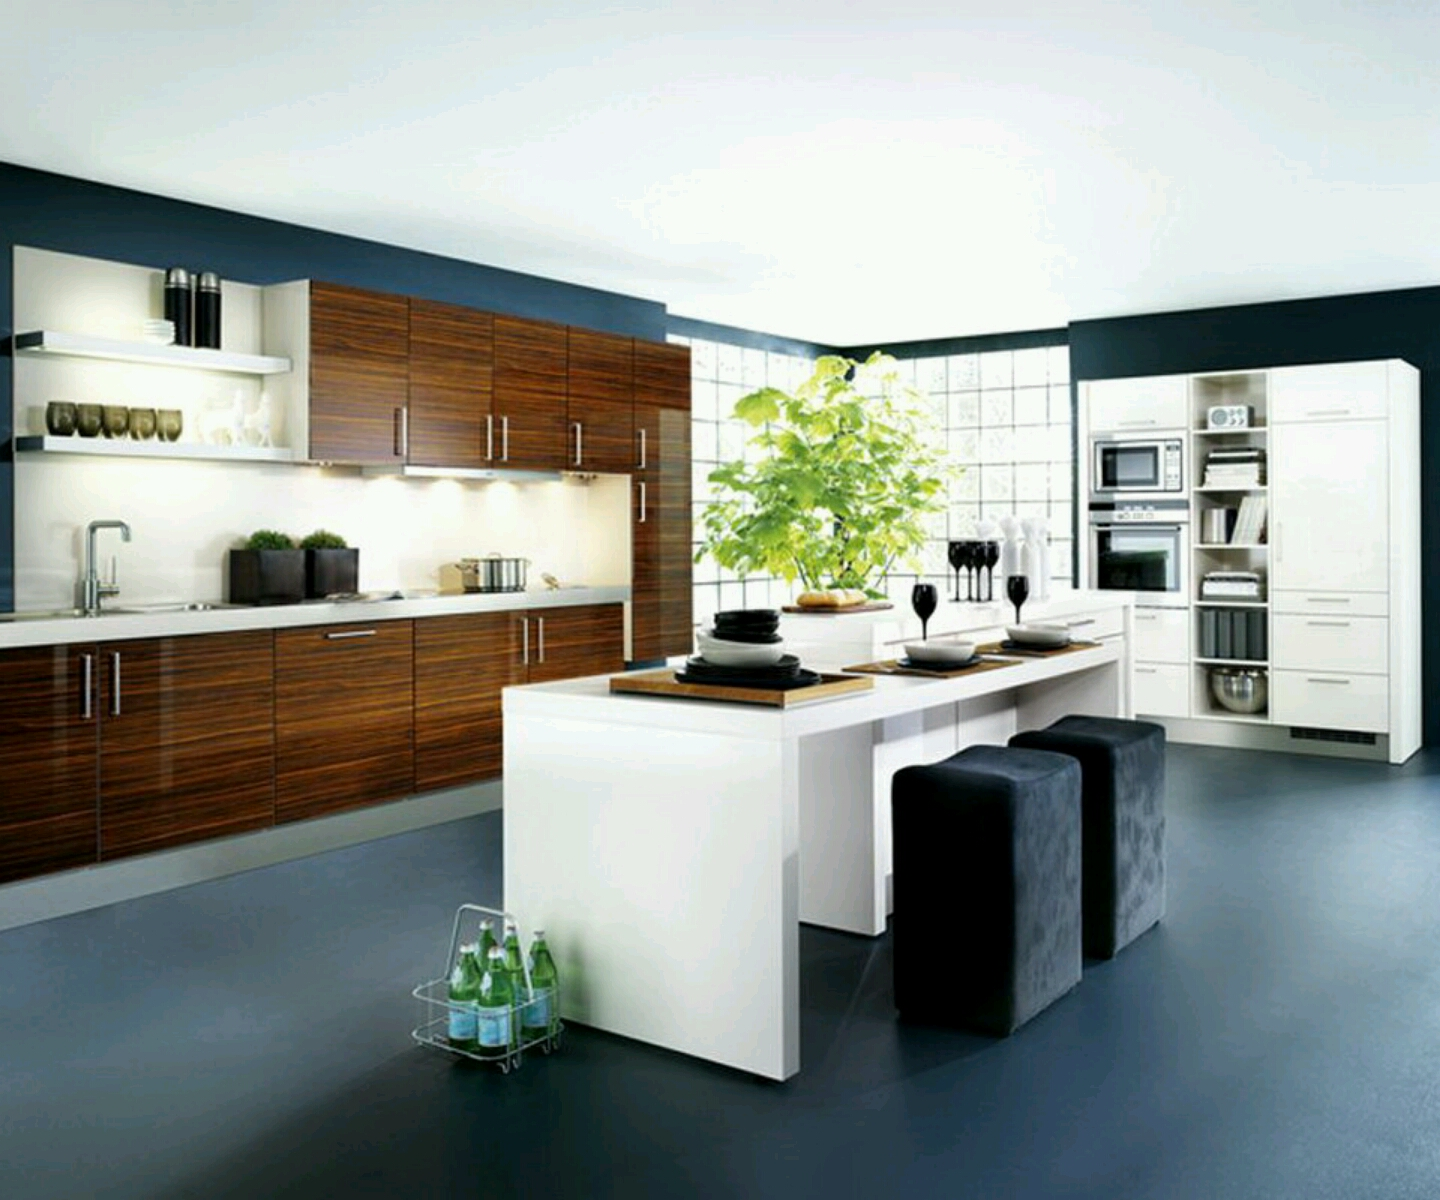 New home designs latest kitchen cabinets designs modern homes - Images of modern kitchen designs ...